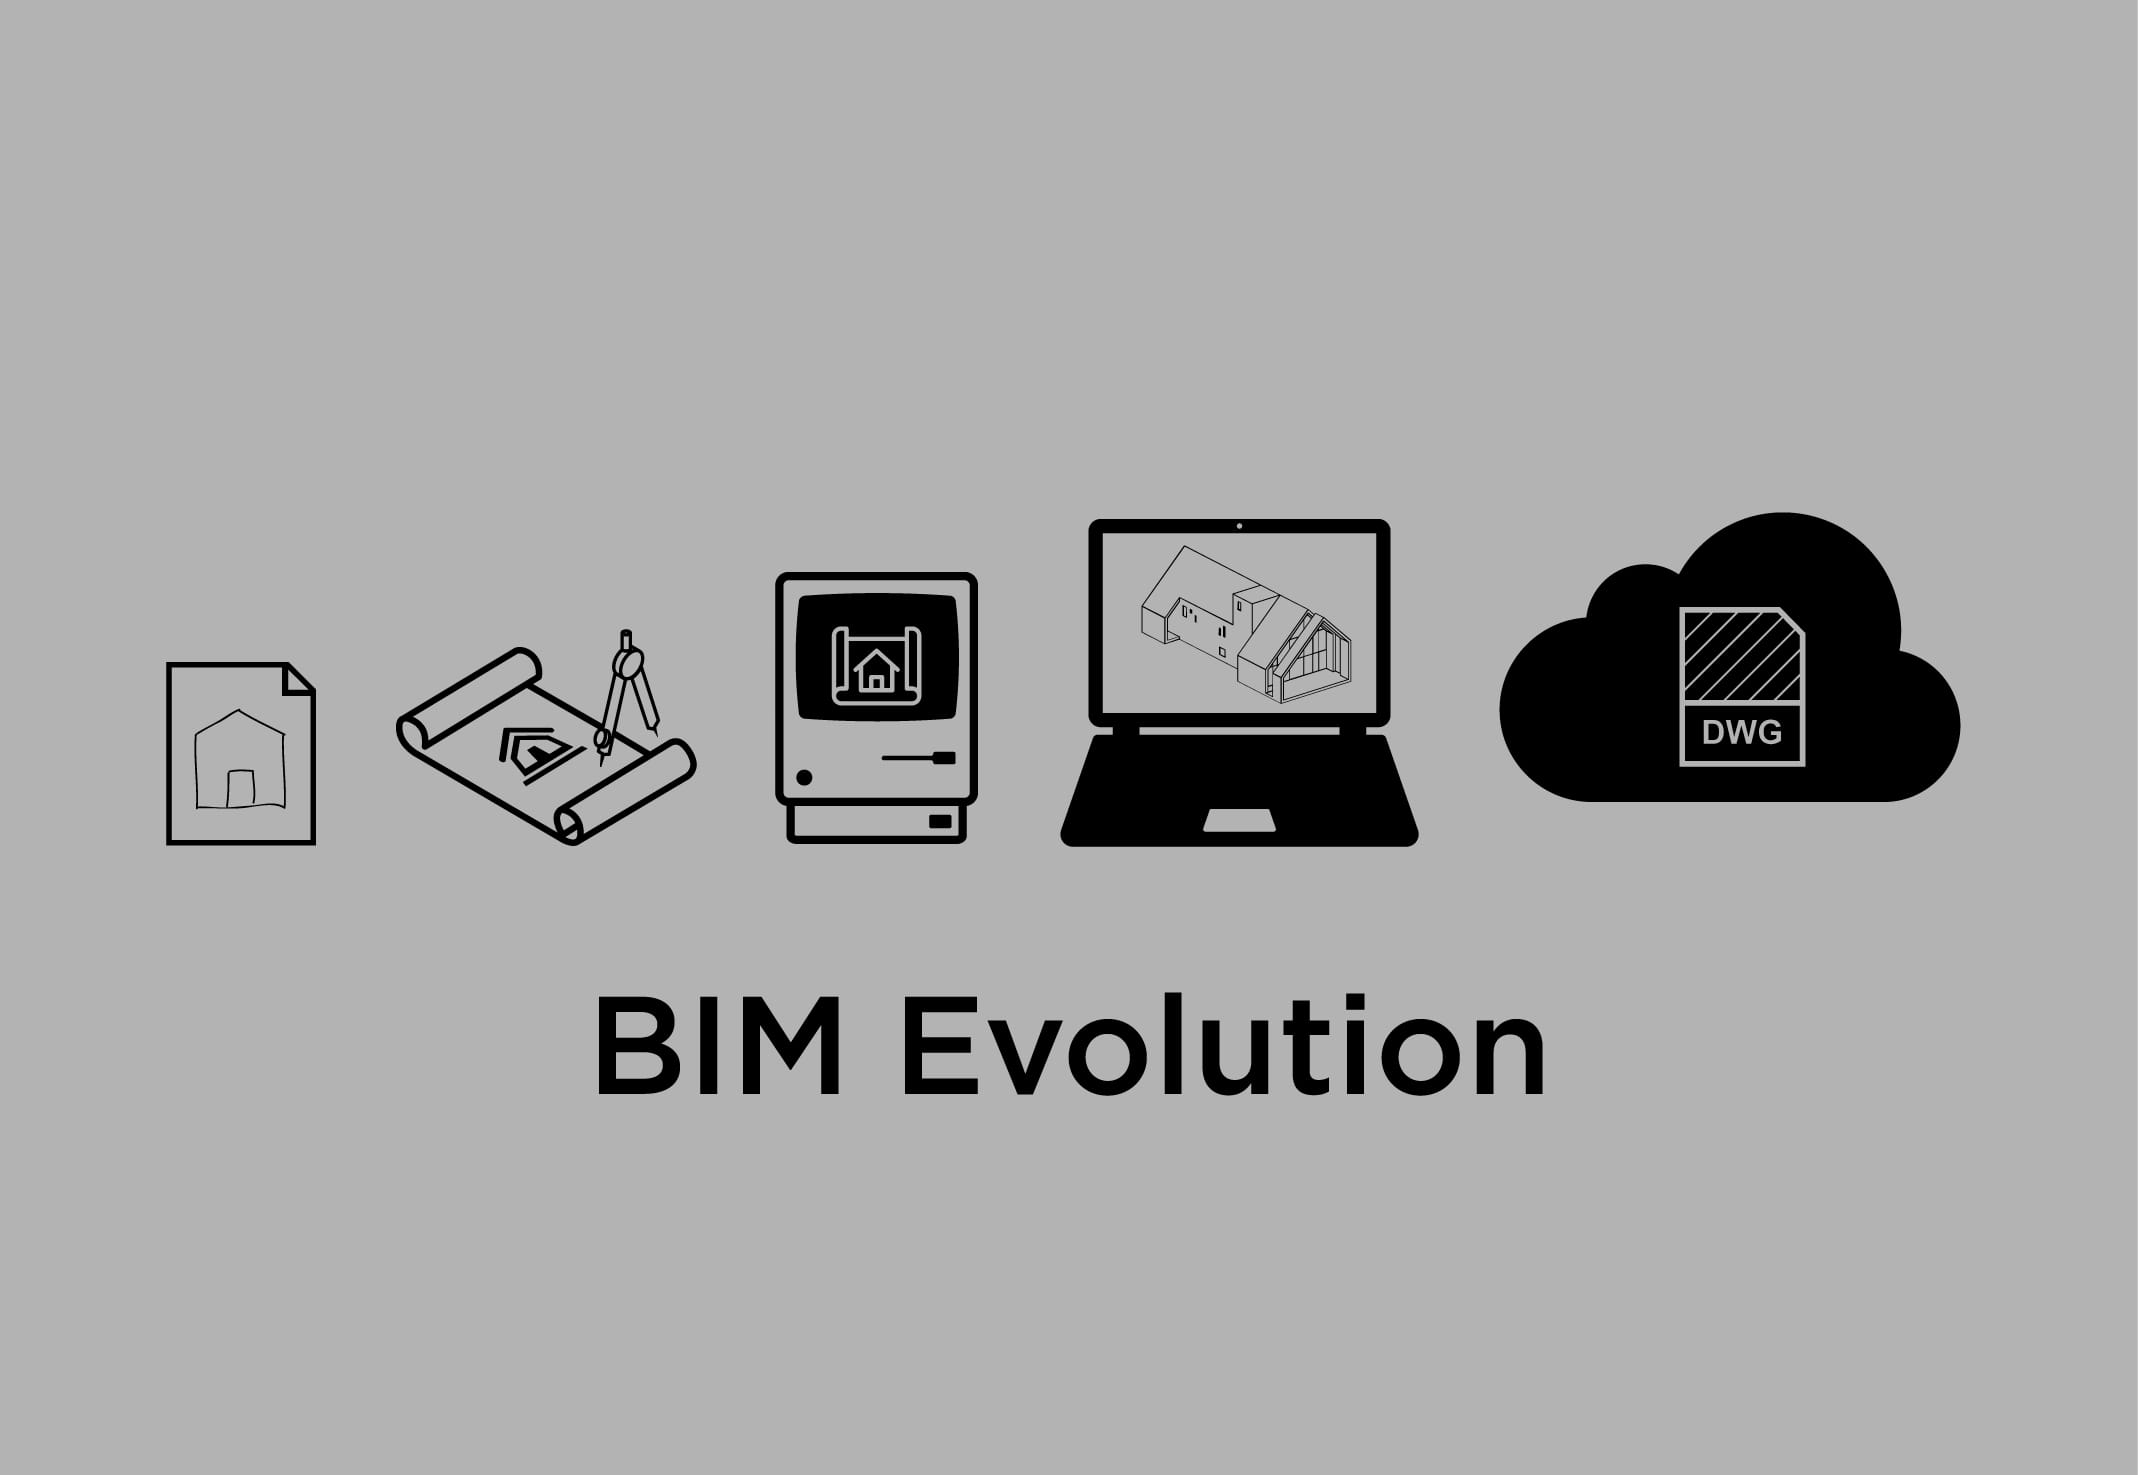 BIM Evolution Drawing